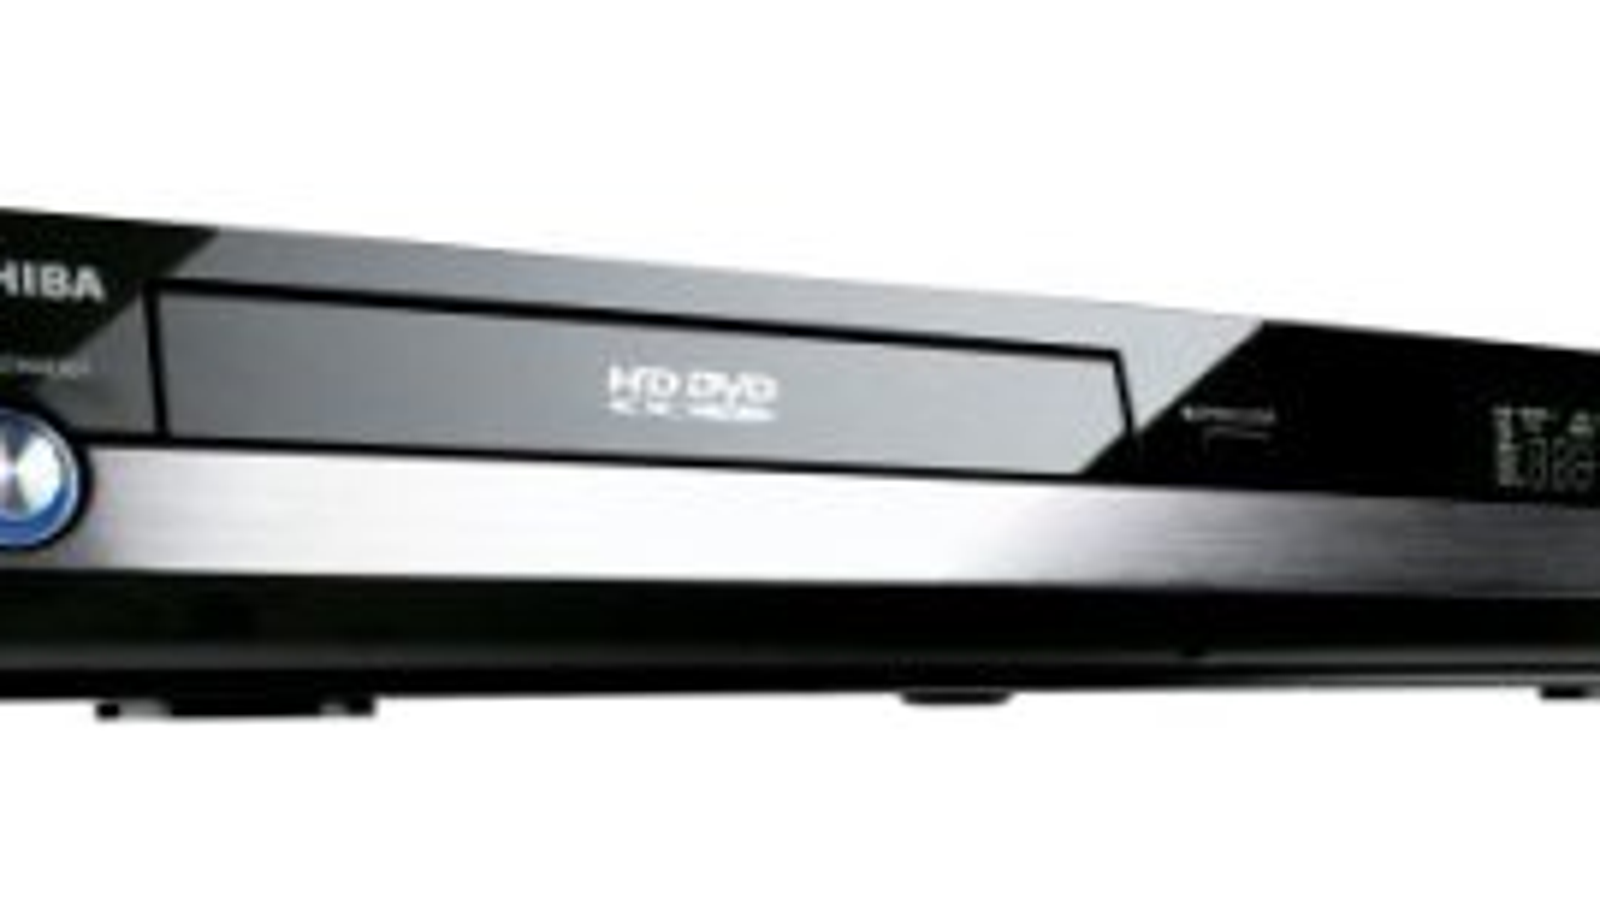 Dealzmodo: Eight HD DVDs With Purchase of Toshiba HD DVD Player